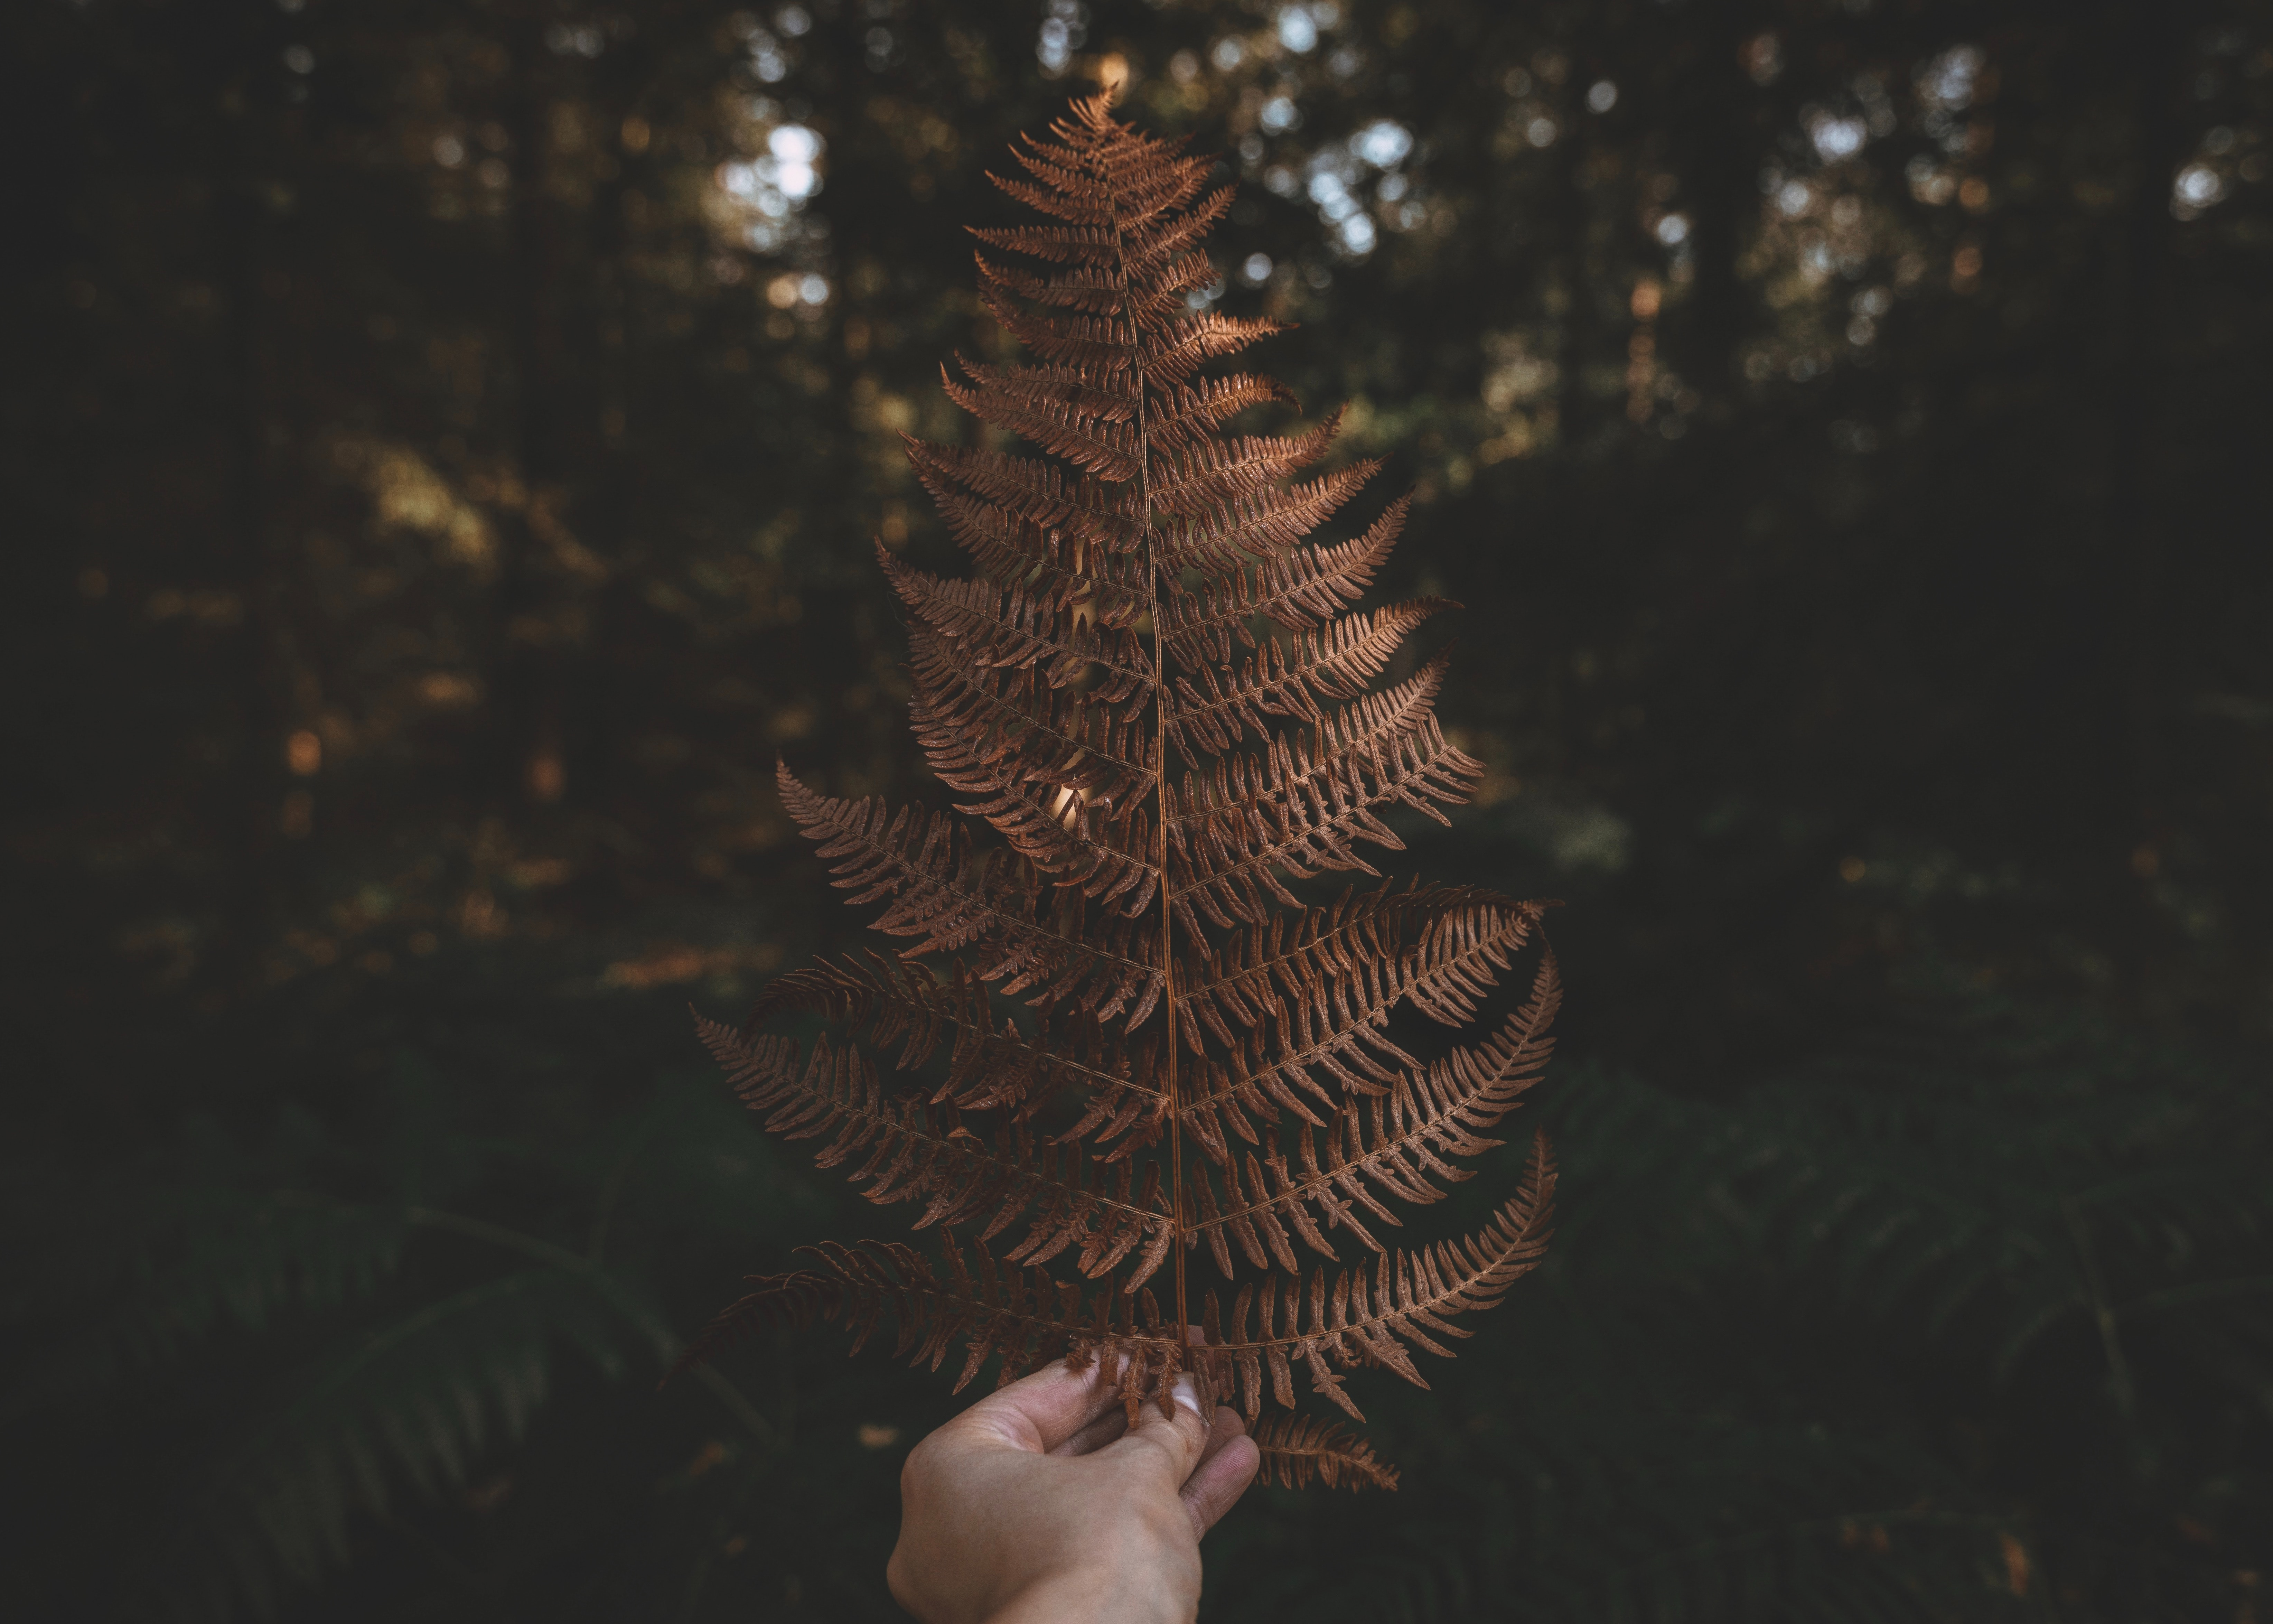 105340 download wallpaper Nature, Plant, Hand, Fern, Leaflet screensavers and pictures for free